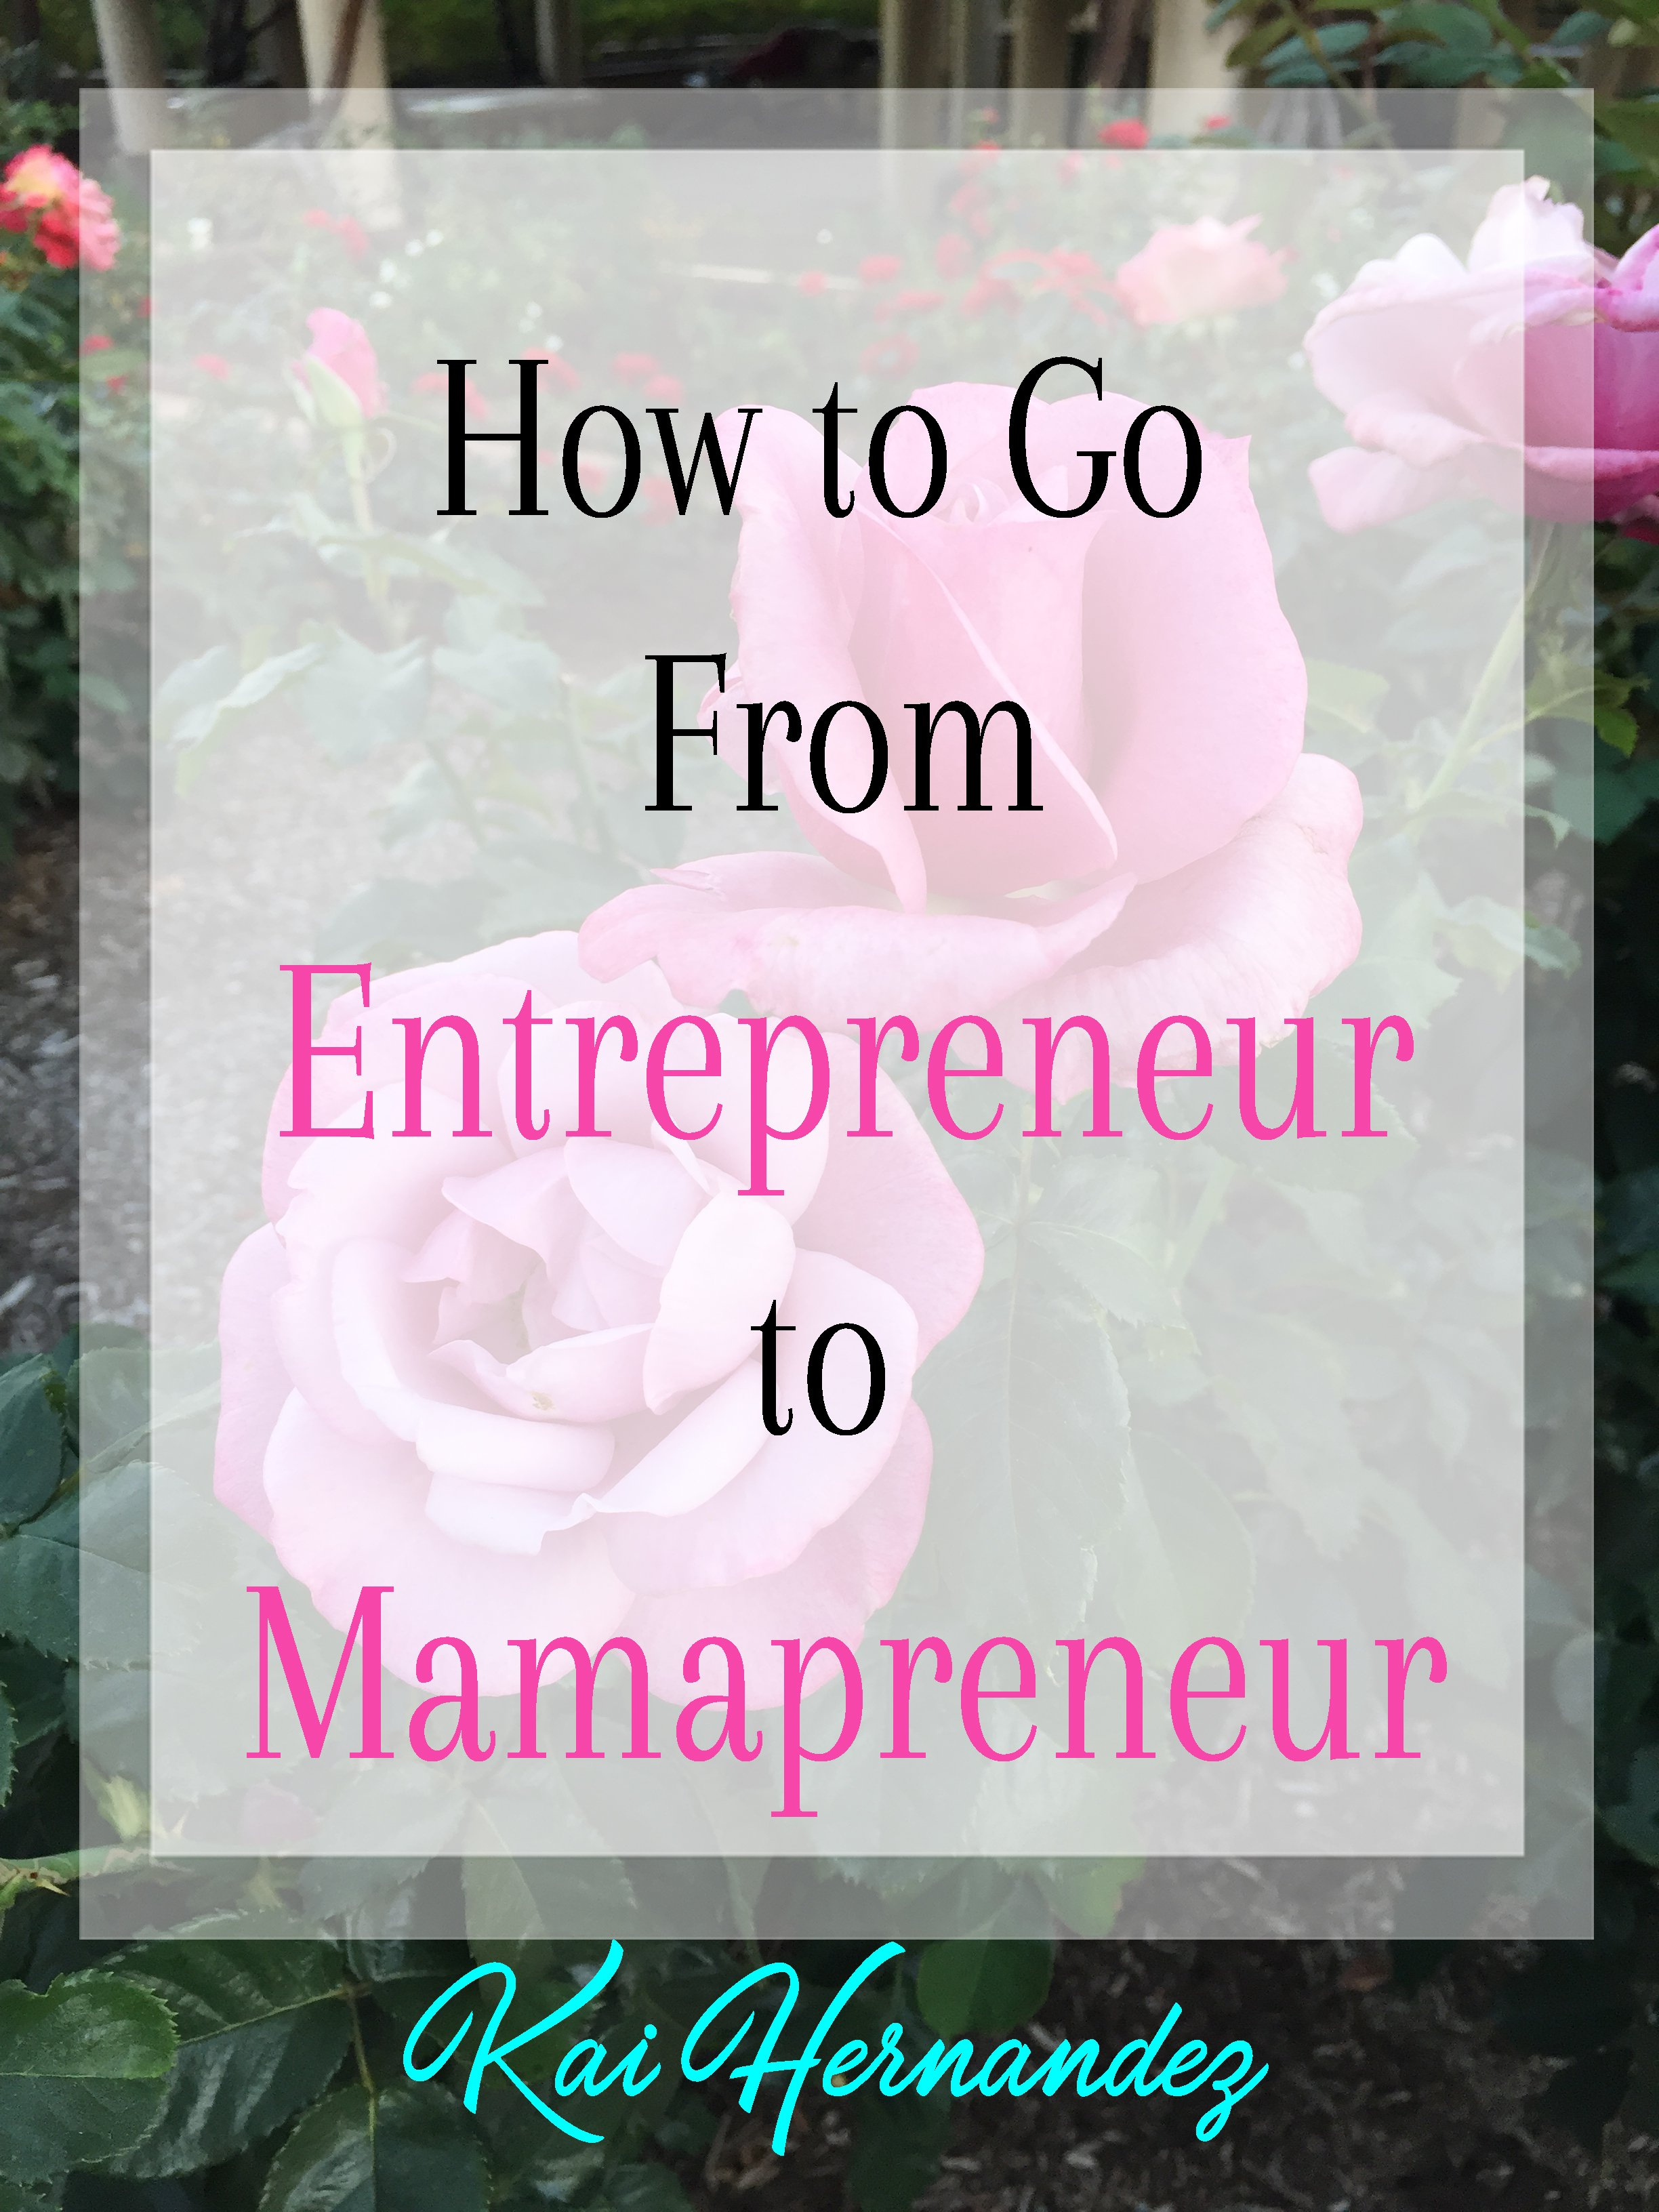 How to Go from Entrepreneur to Mamapreneur